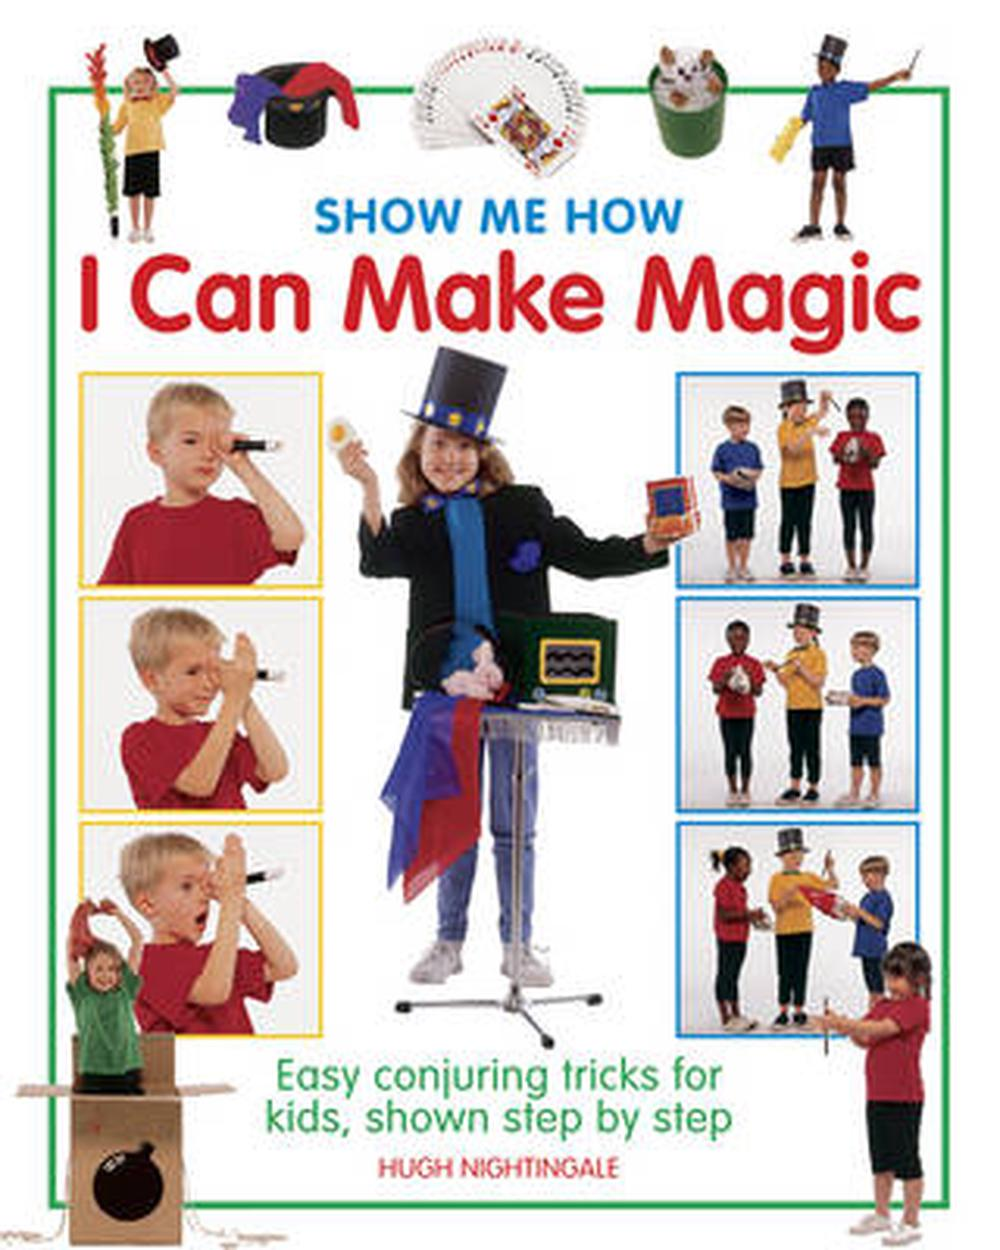 I Can Make Magic